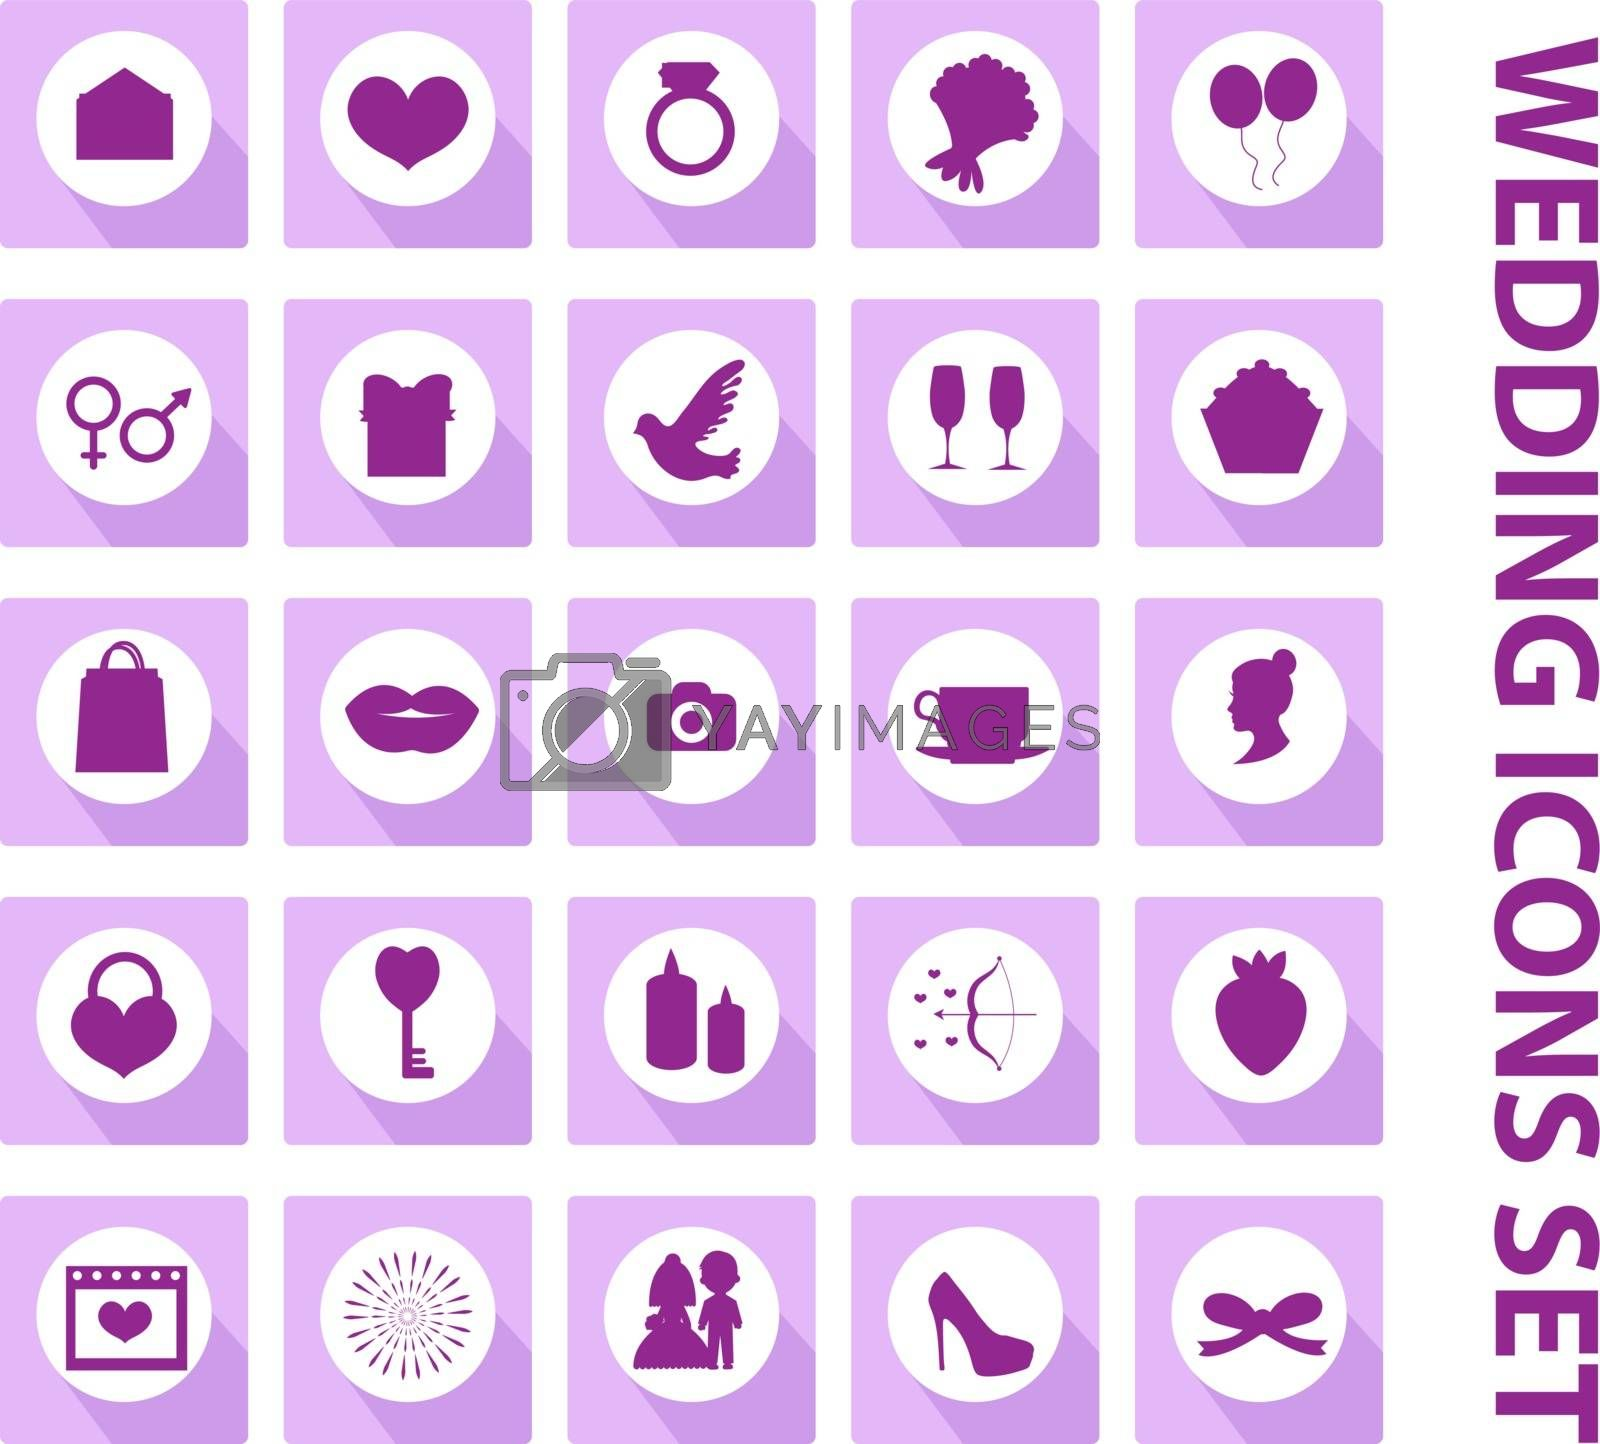 Wedding set of icons, design elements, black silhouette with long shadows.Marriage and romance of a collection of objects with ring, bride, groom, balloons, hearts, flowers. Vector illustration.